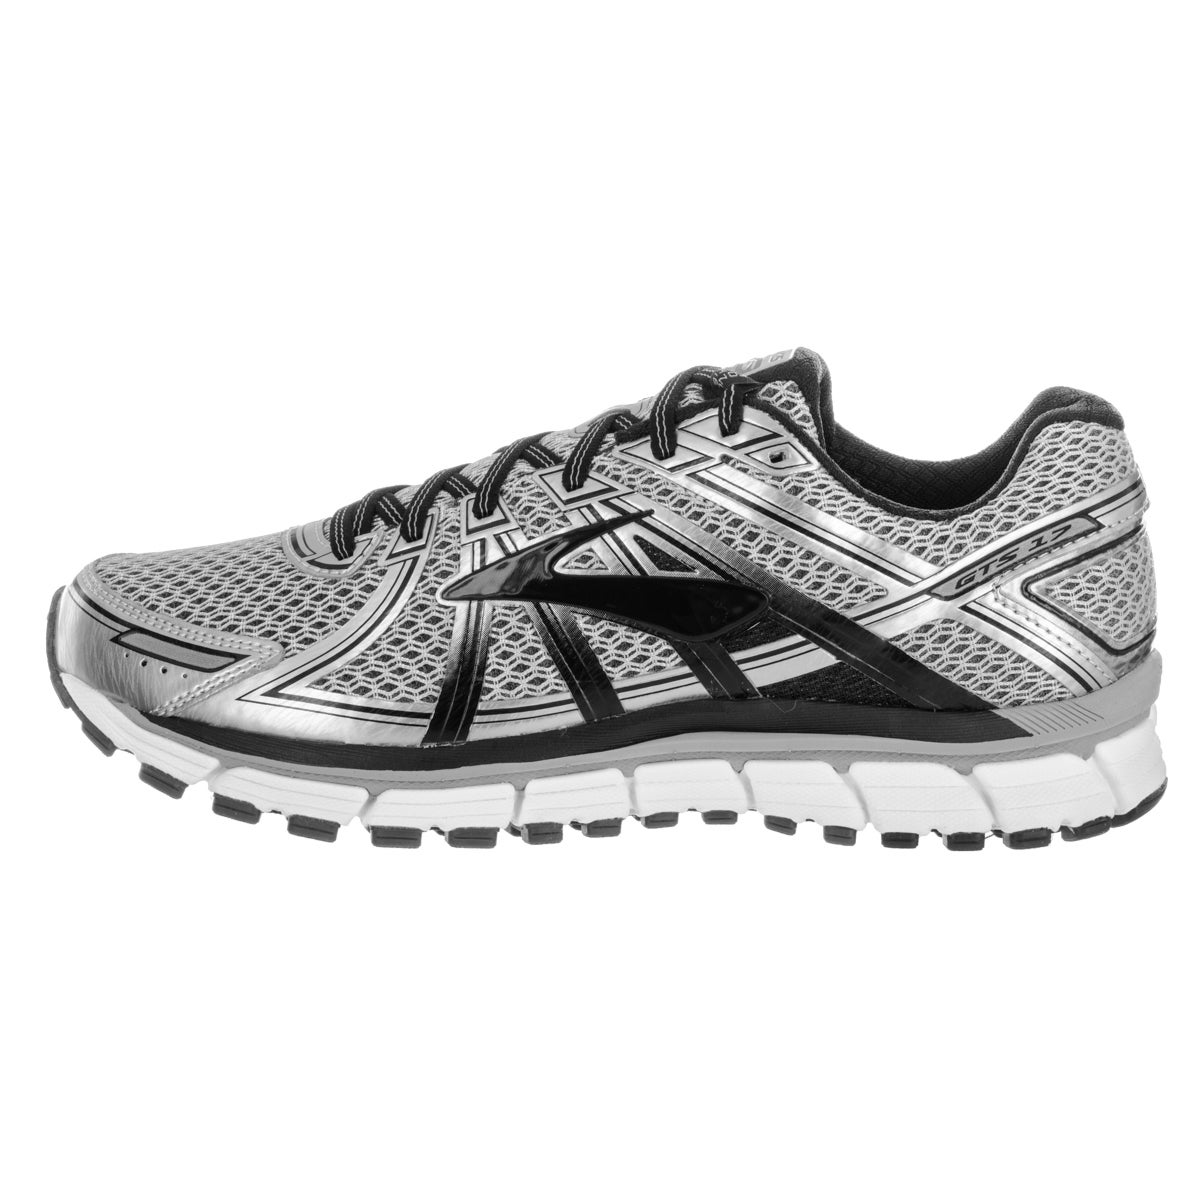 Shop Brooks Men s Adrenaline GTS 17 Silver Running Shoes - Free Shipping  Today - Overstock - 13620267 f5f0139e9e12